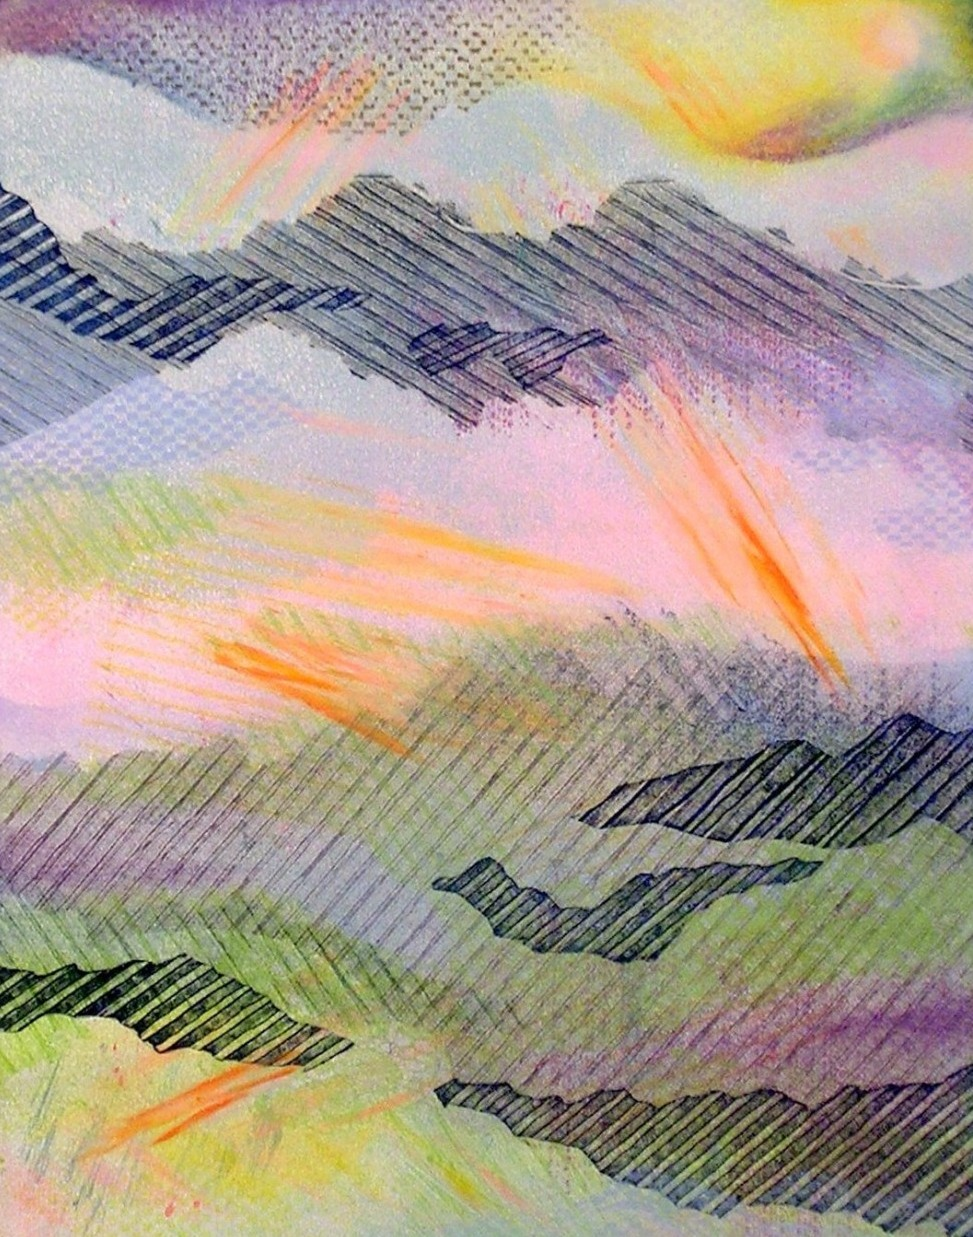 Weather Patterns #1, monotype